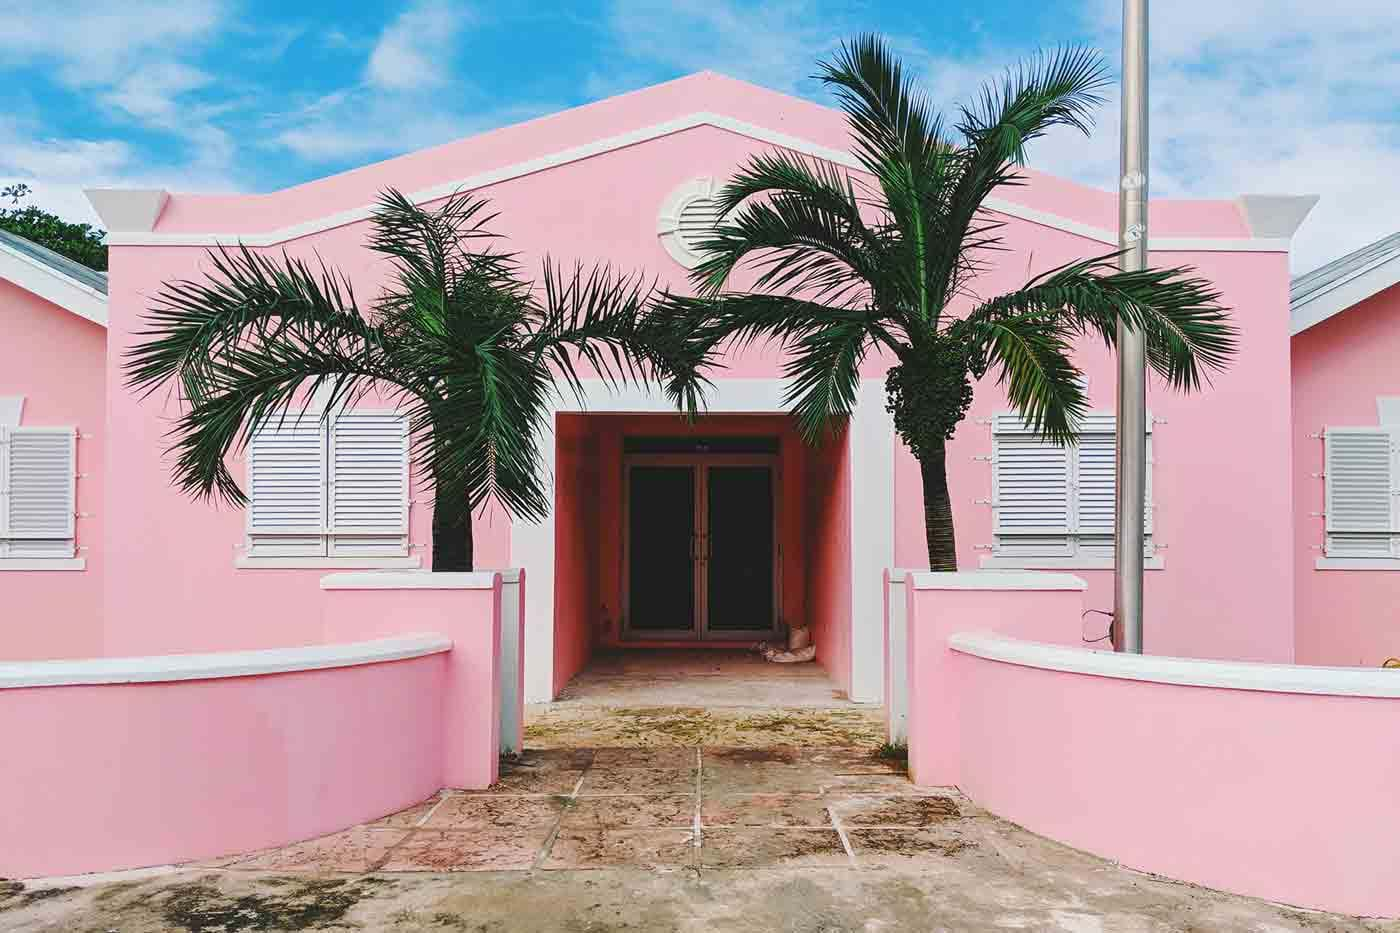 Doorway of a pink house, flanked by palm trees